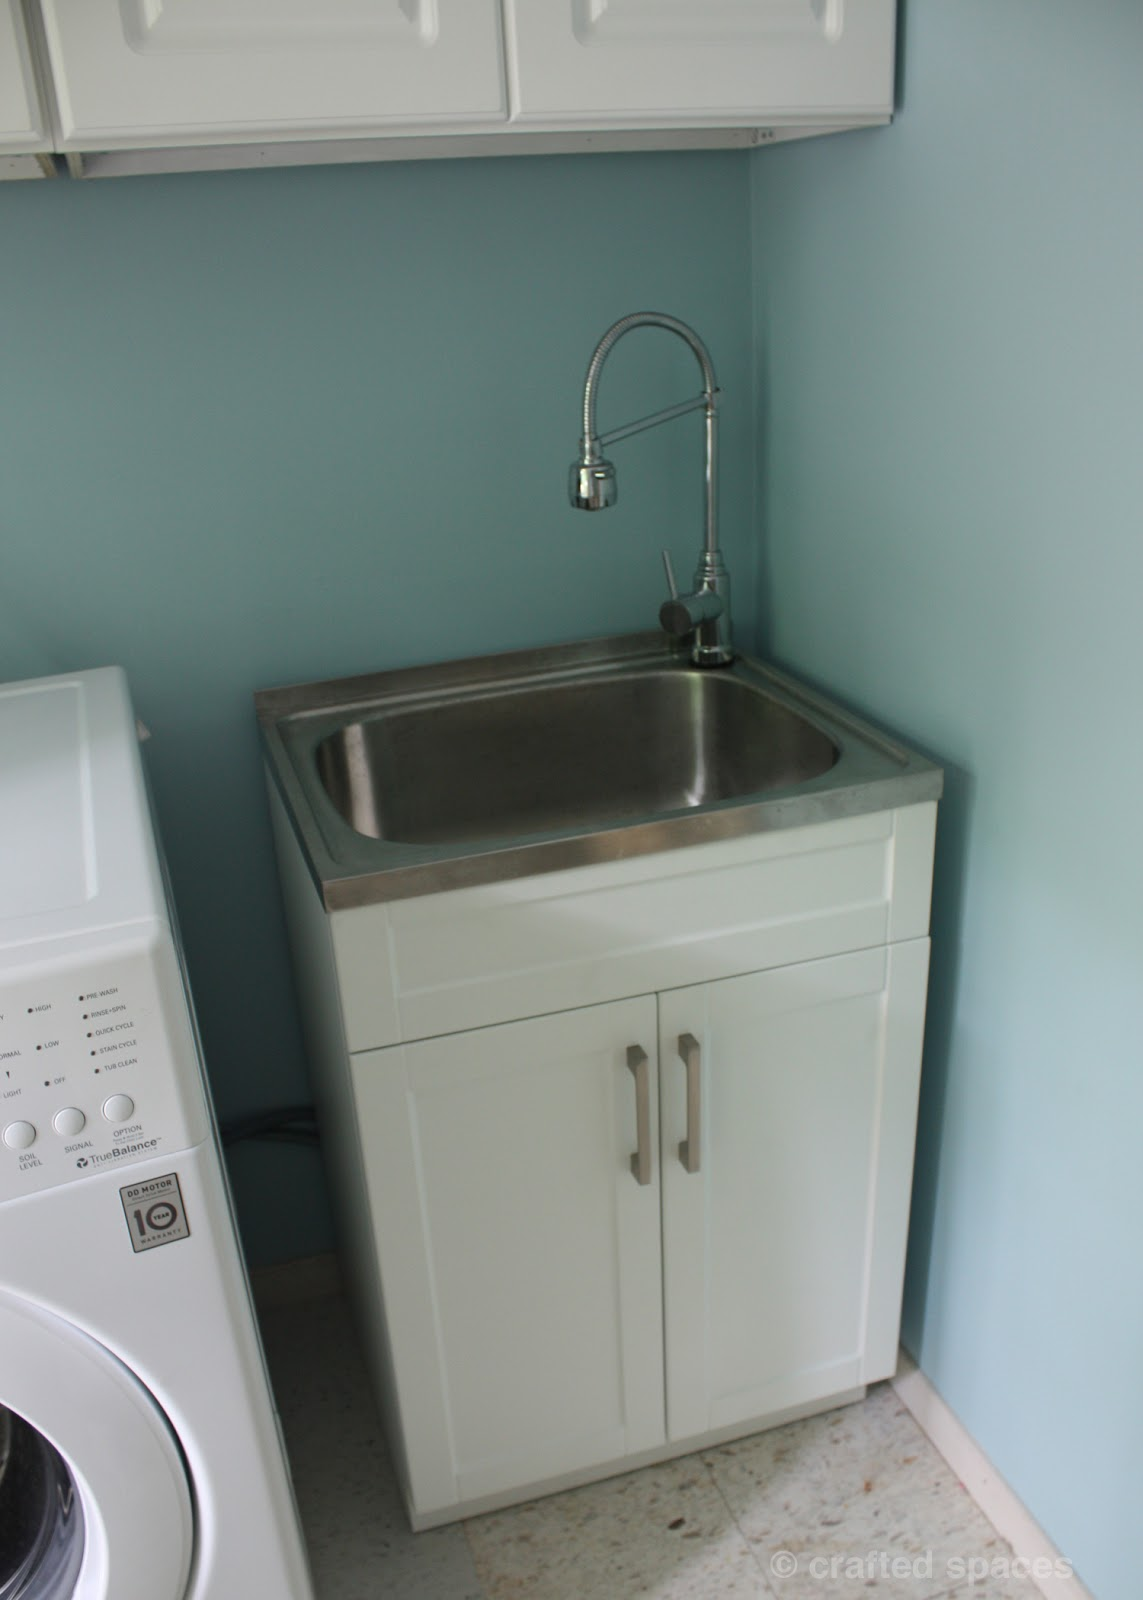 We were really happy to get this wonderful sink. It is deep enough to ...